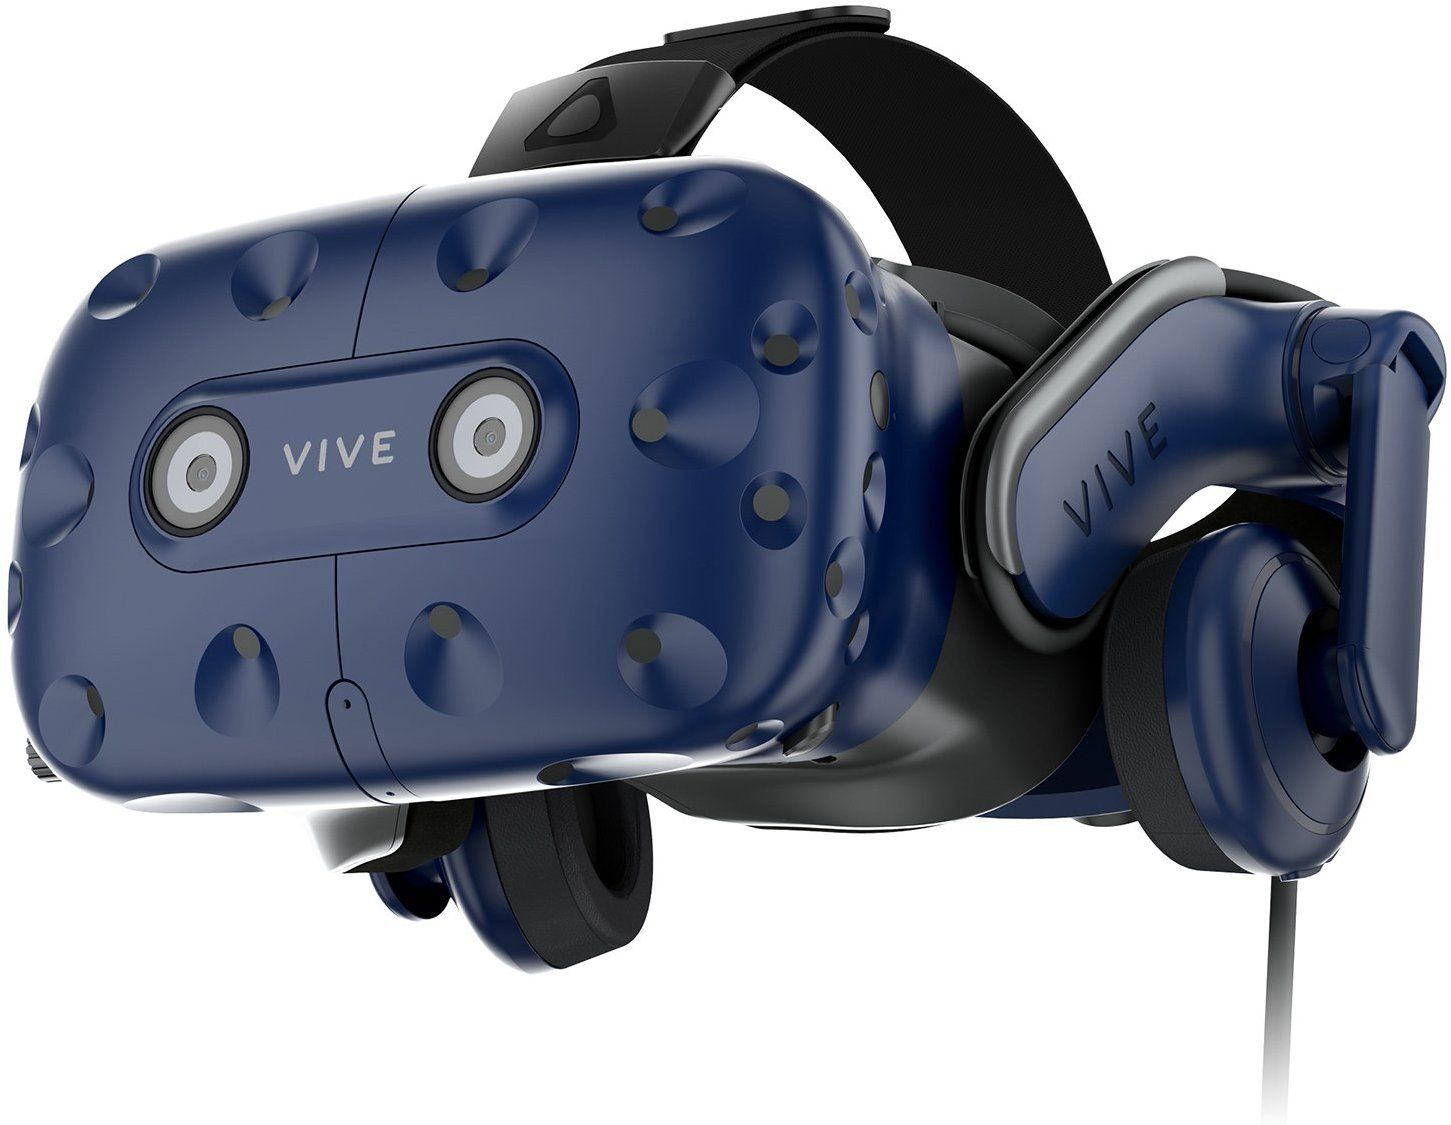 Amazon.com: HTC VIVE Virtual Reality System: pc: Video ...